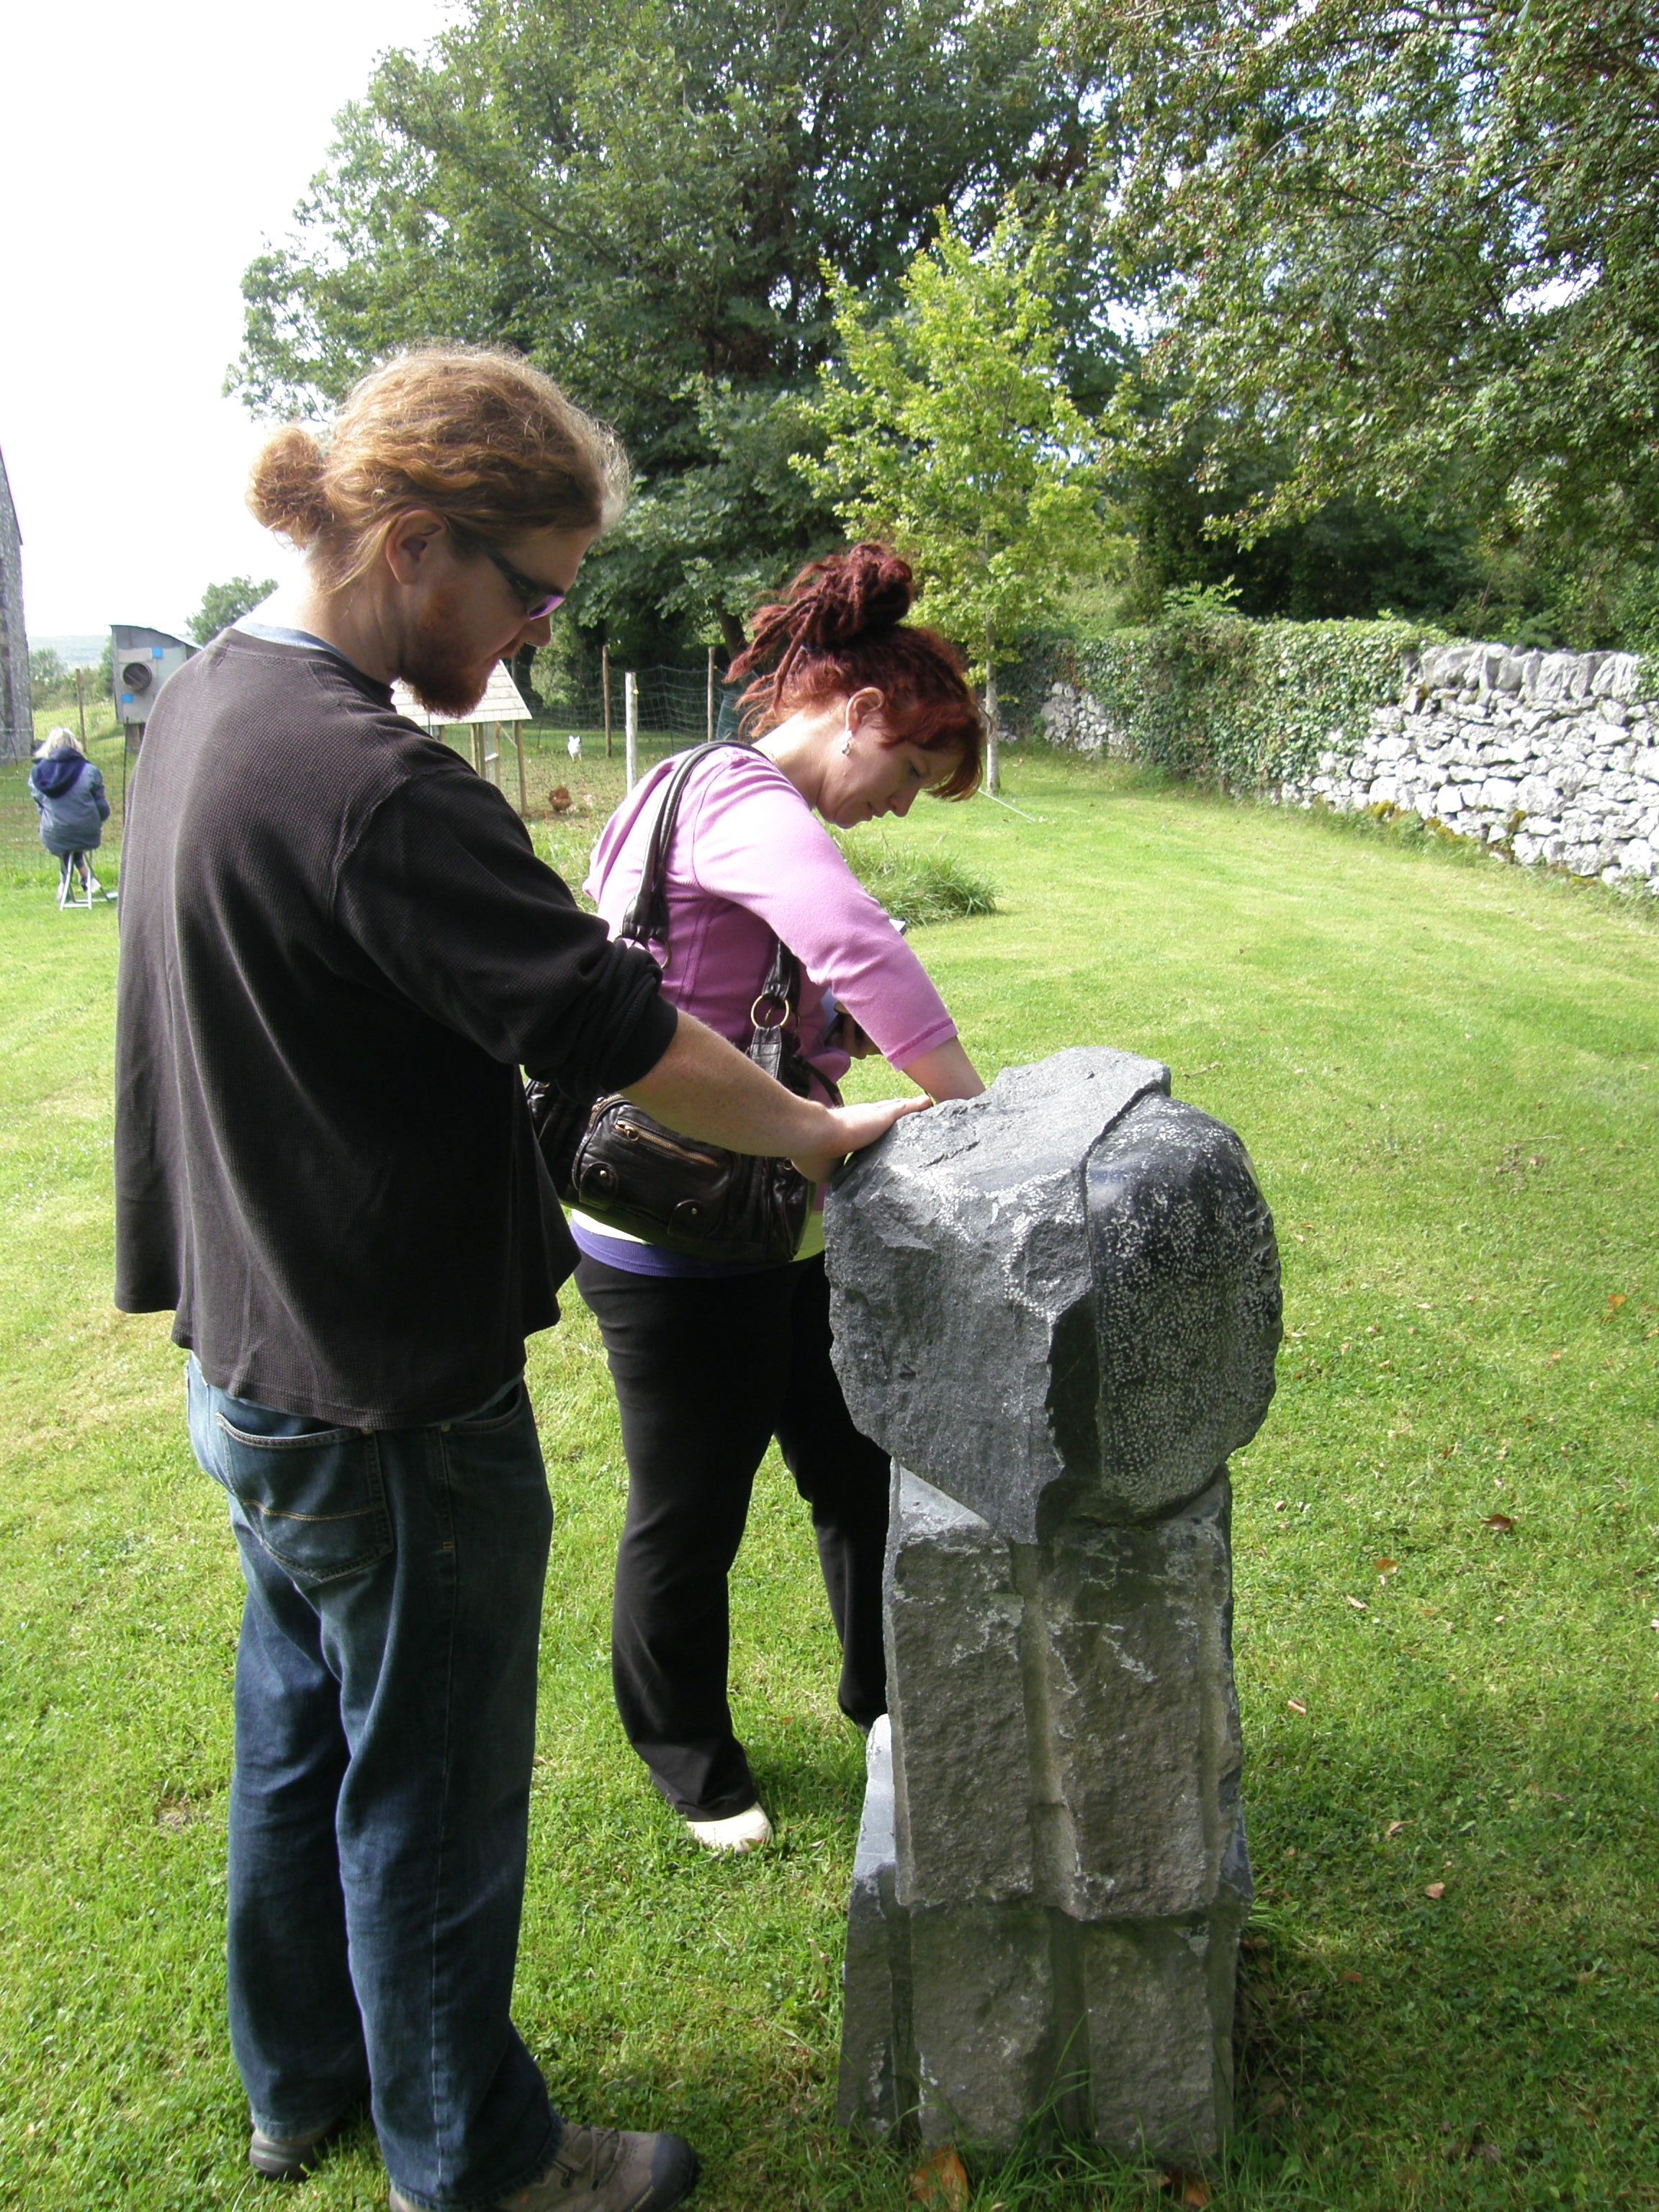 Caitlin and Jeff at Burren College of the Arts